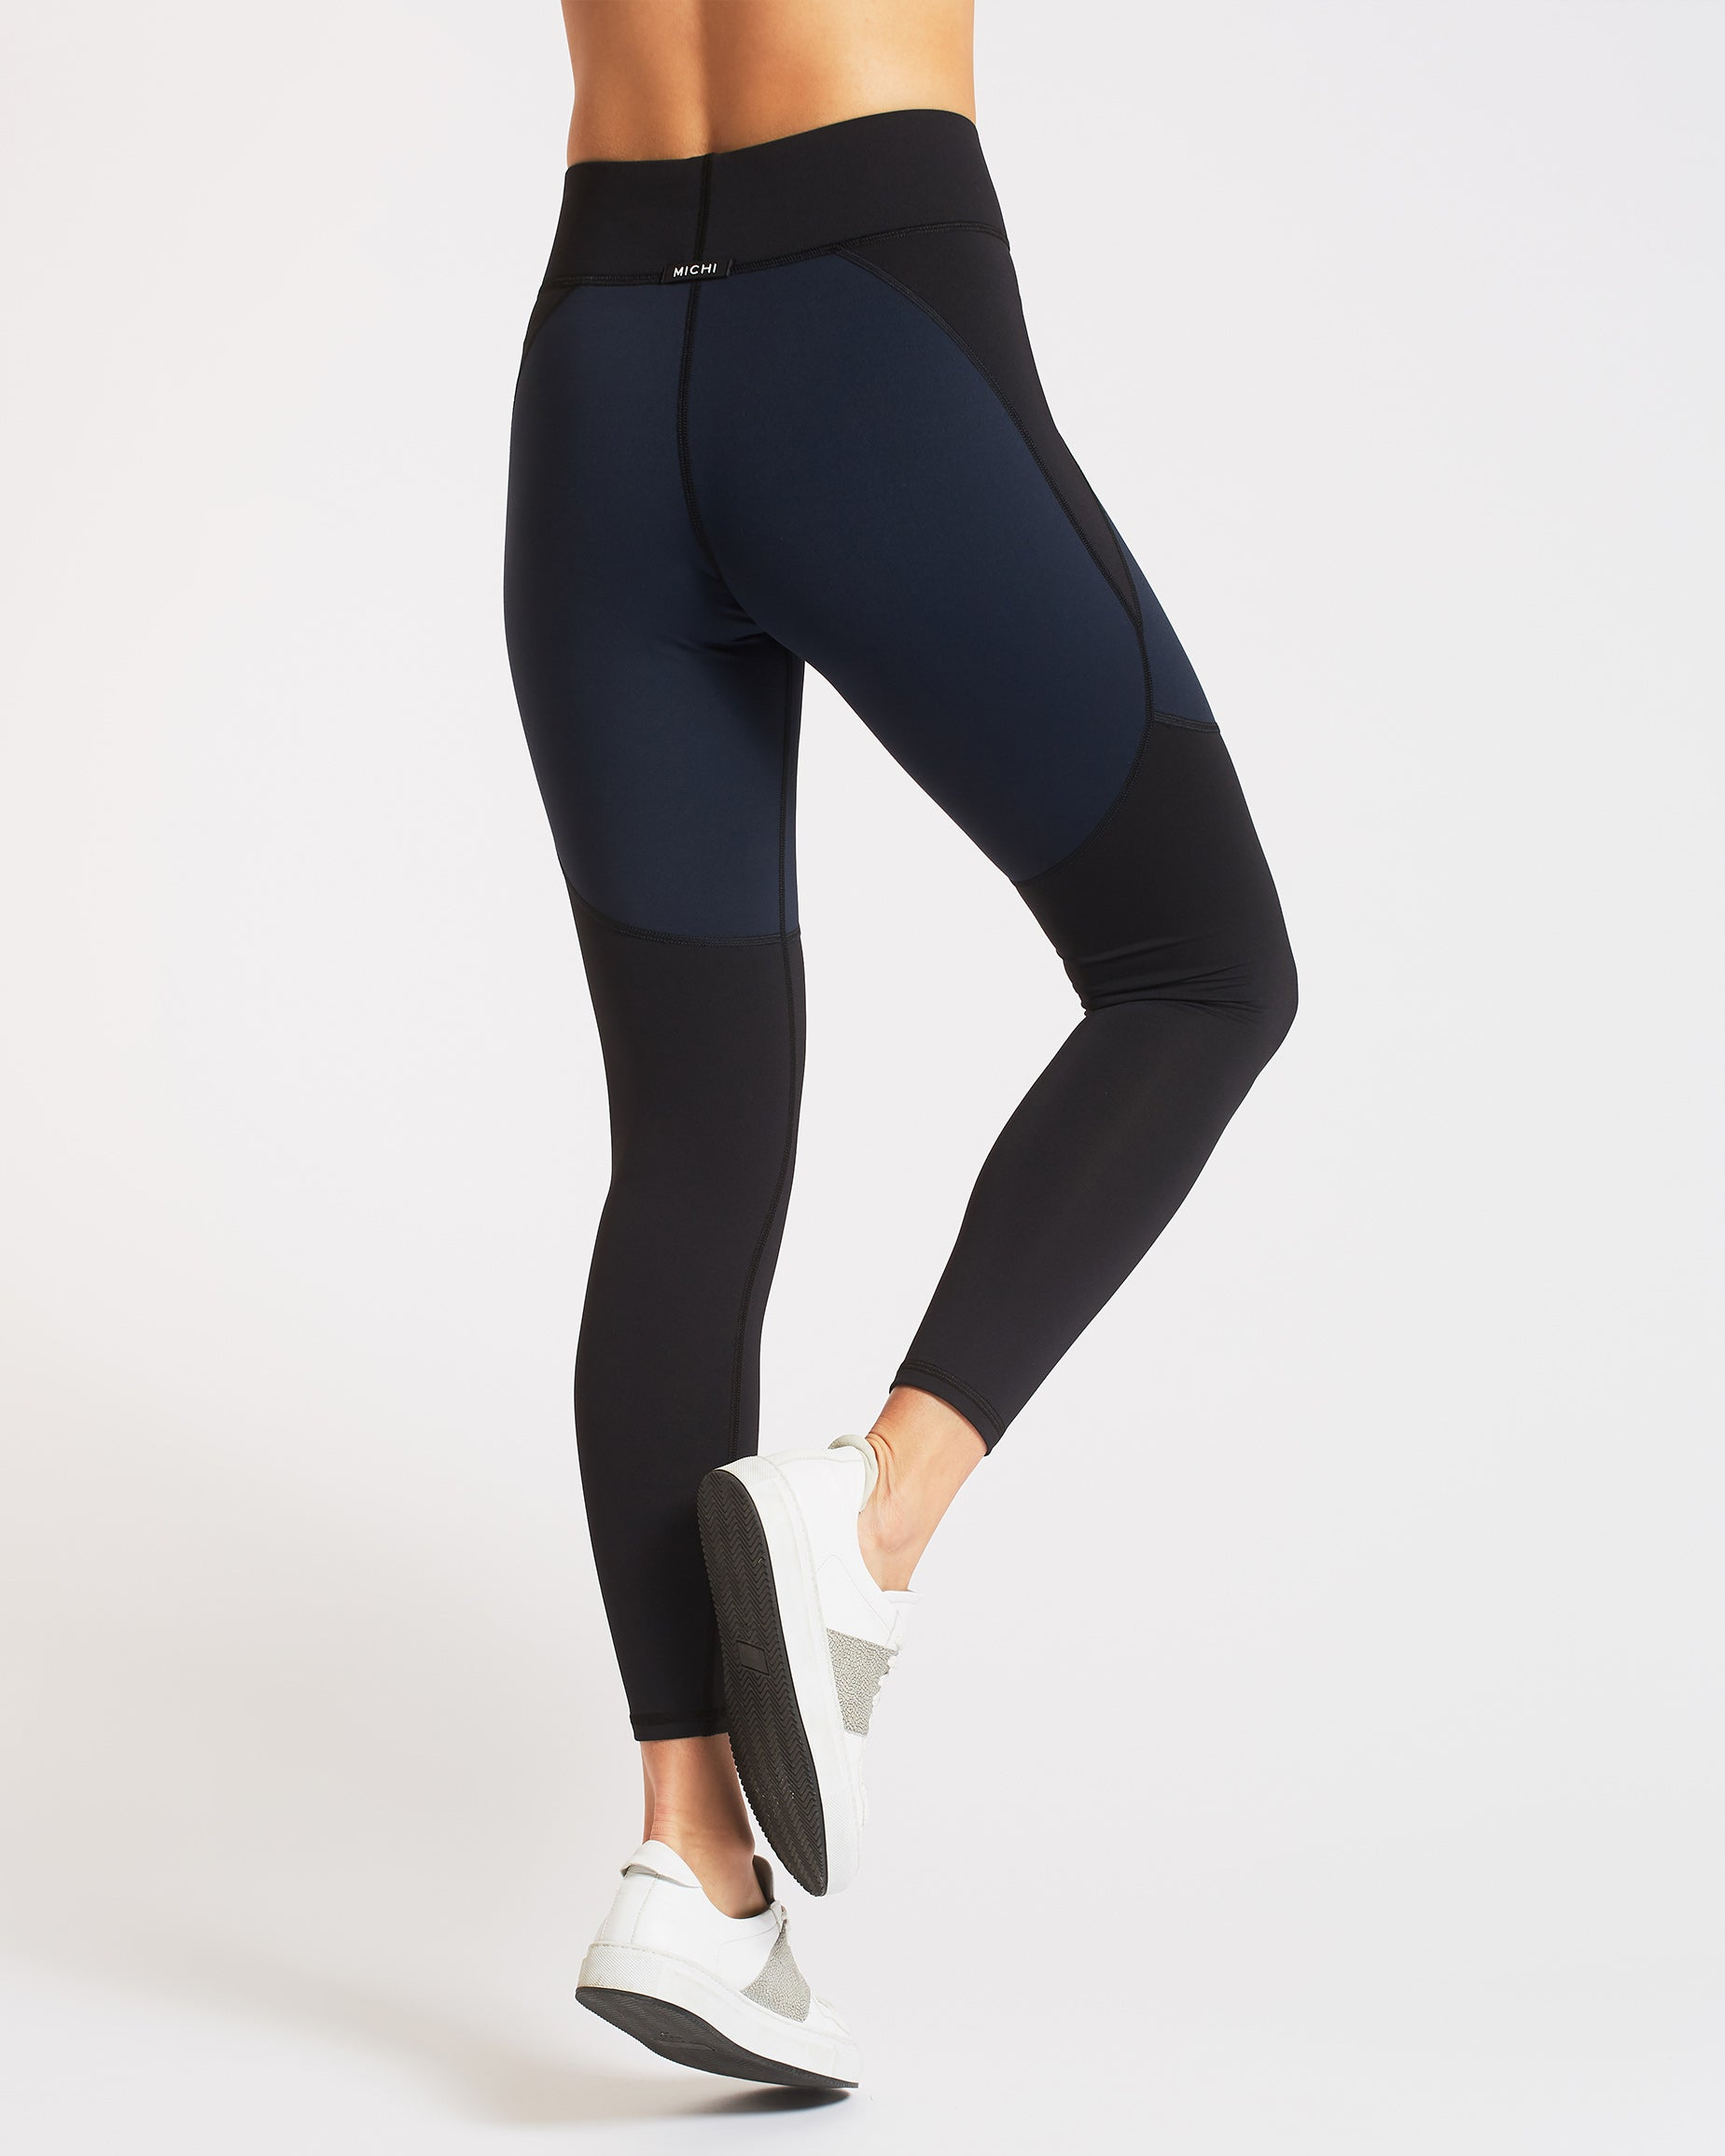 tidal-legging-deep-sea-navy-black